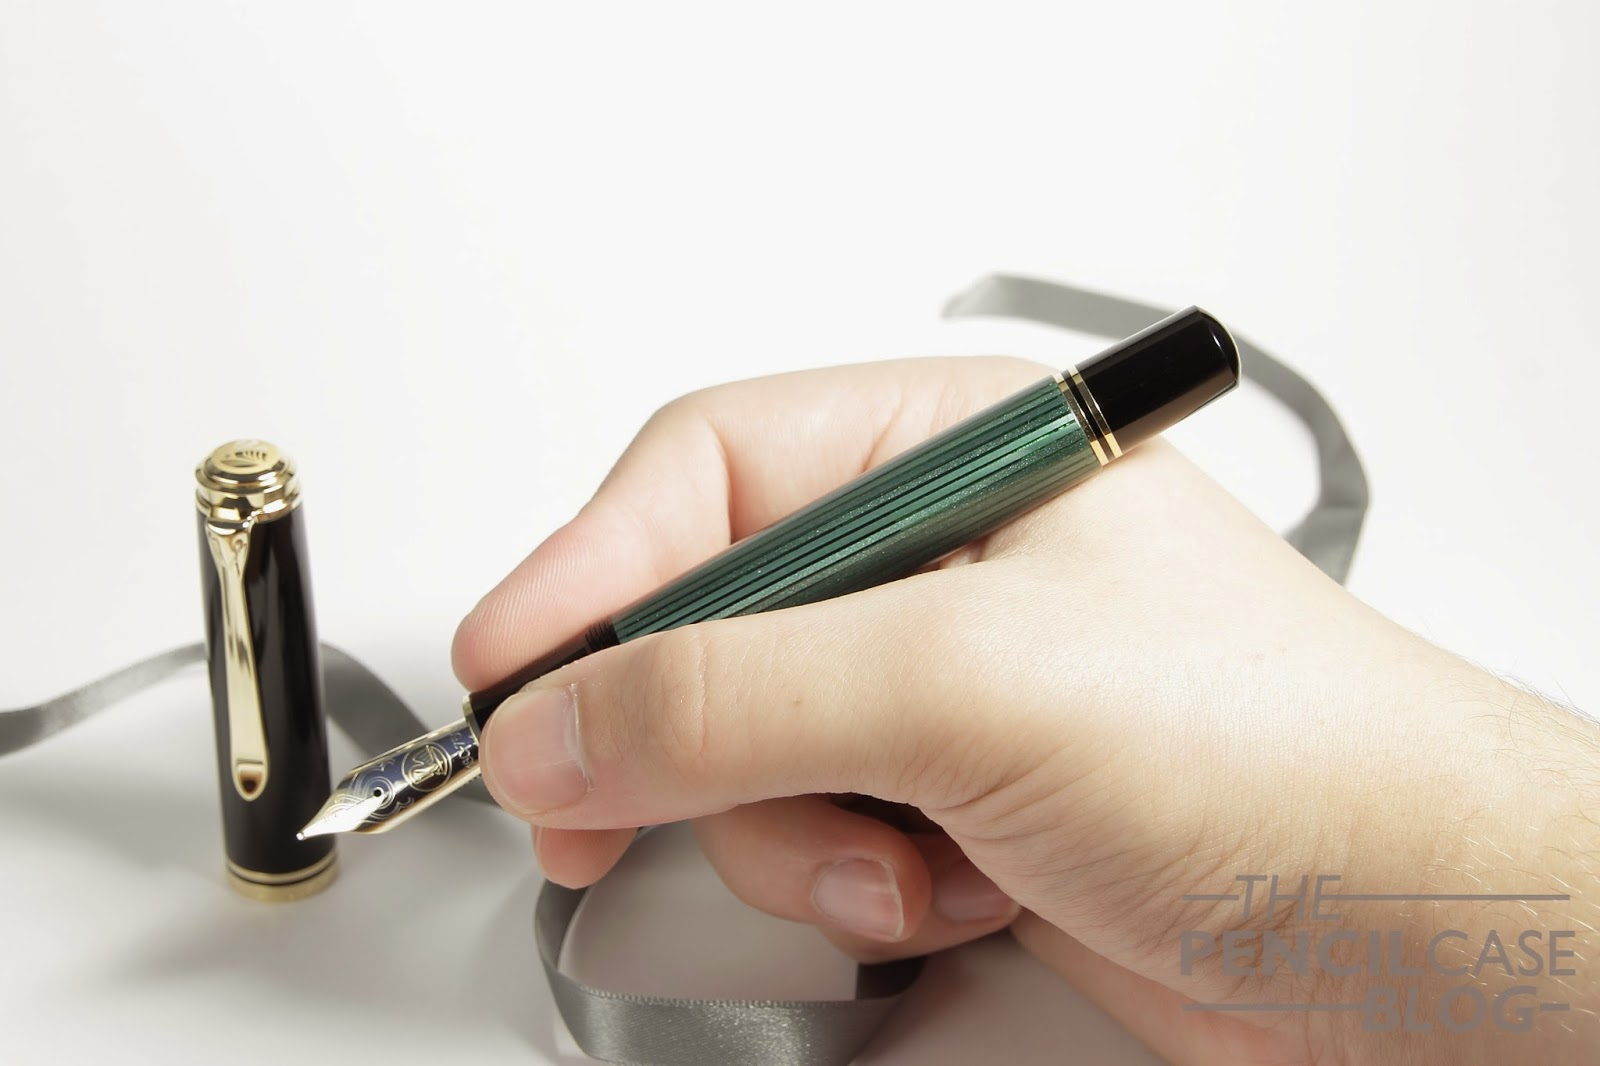 Pelikan M1000 fountain pen in hand